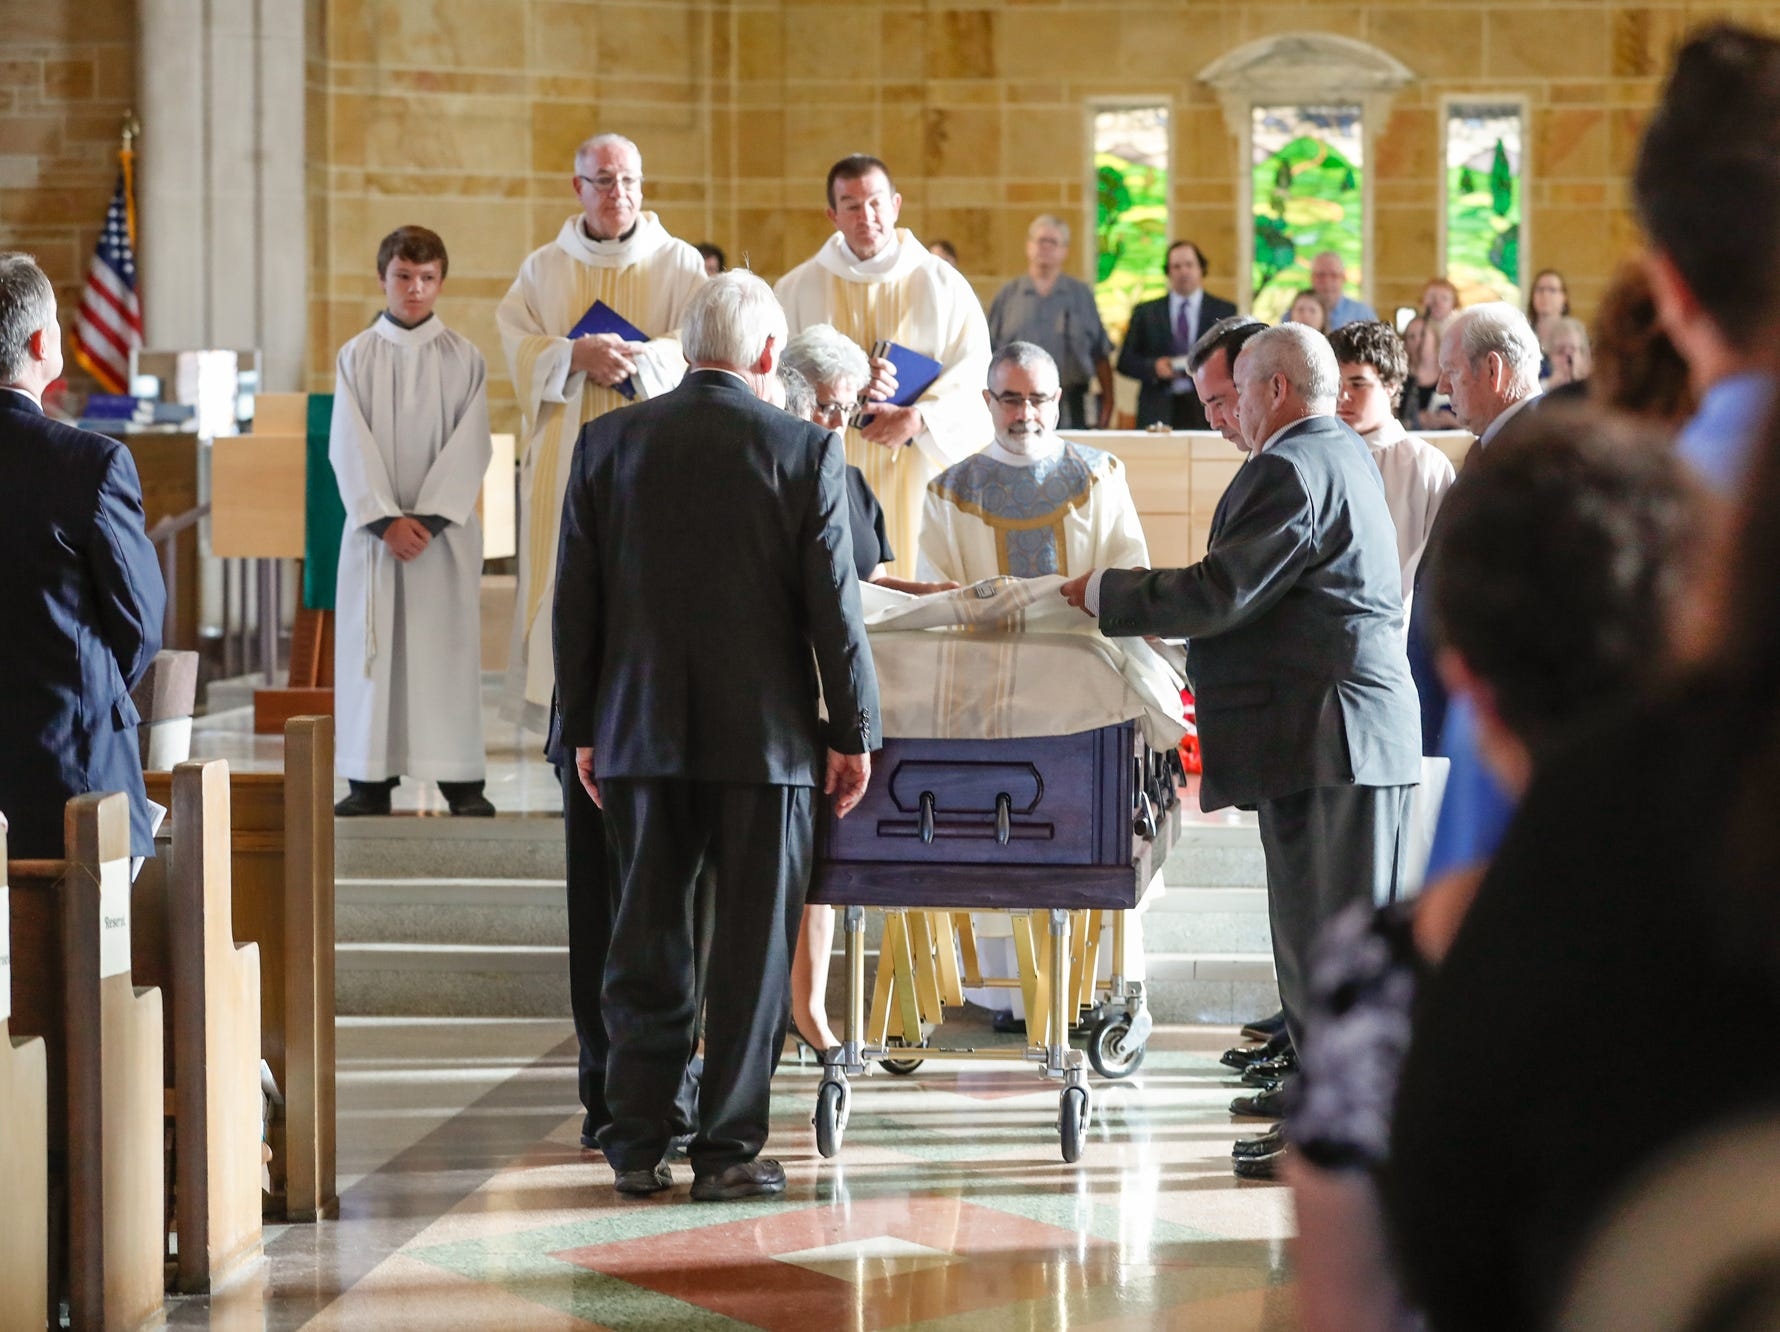 Longtime public servant Mary Moriarty Adams is remembered during the Mass of Christian Burial for held at Little Flower Catholic Church in Indianapolis on Saturday, Sept. 15, 2018.